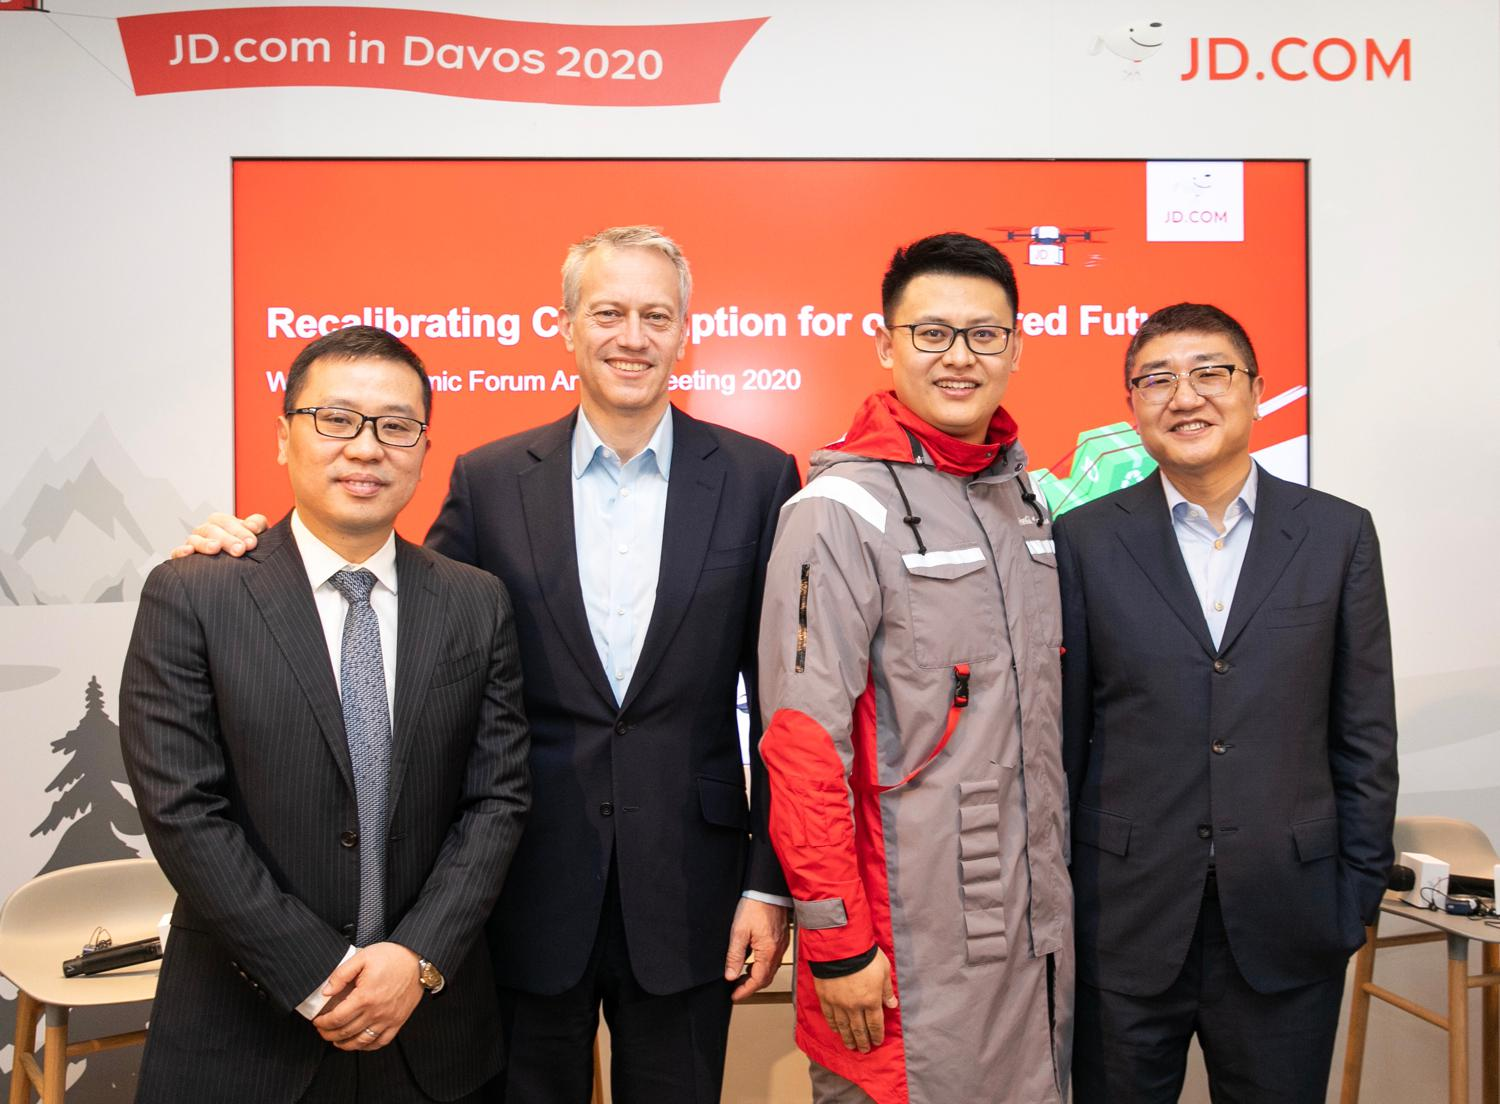 Coca-Cola Chairman and CEO James Quincey (Left 2), JD Logistics CEO Zhenhui Wang (Left 1), JD Retail CEO Lei Xu (Right 1) took a group photo with a JD staff wearing a uniform made of recycled PET (rPET) materials co-created.